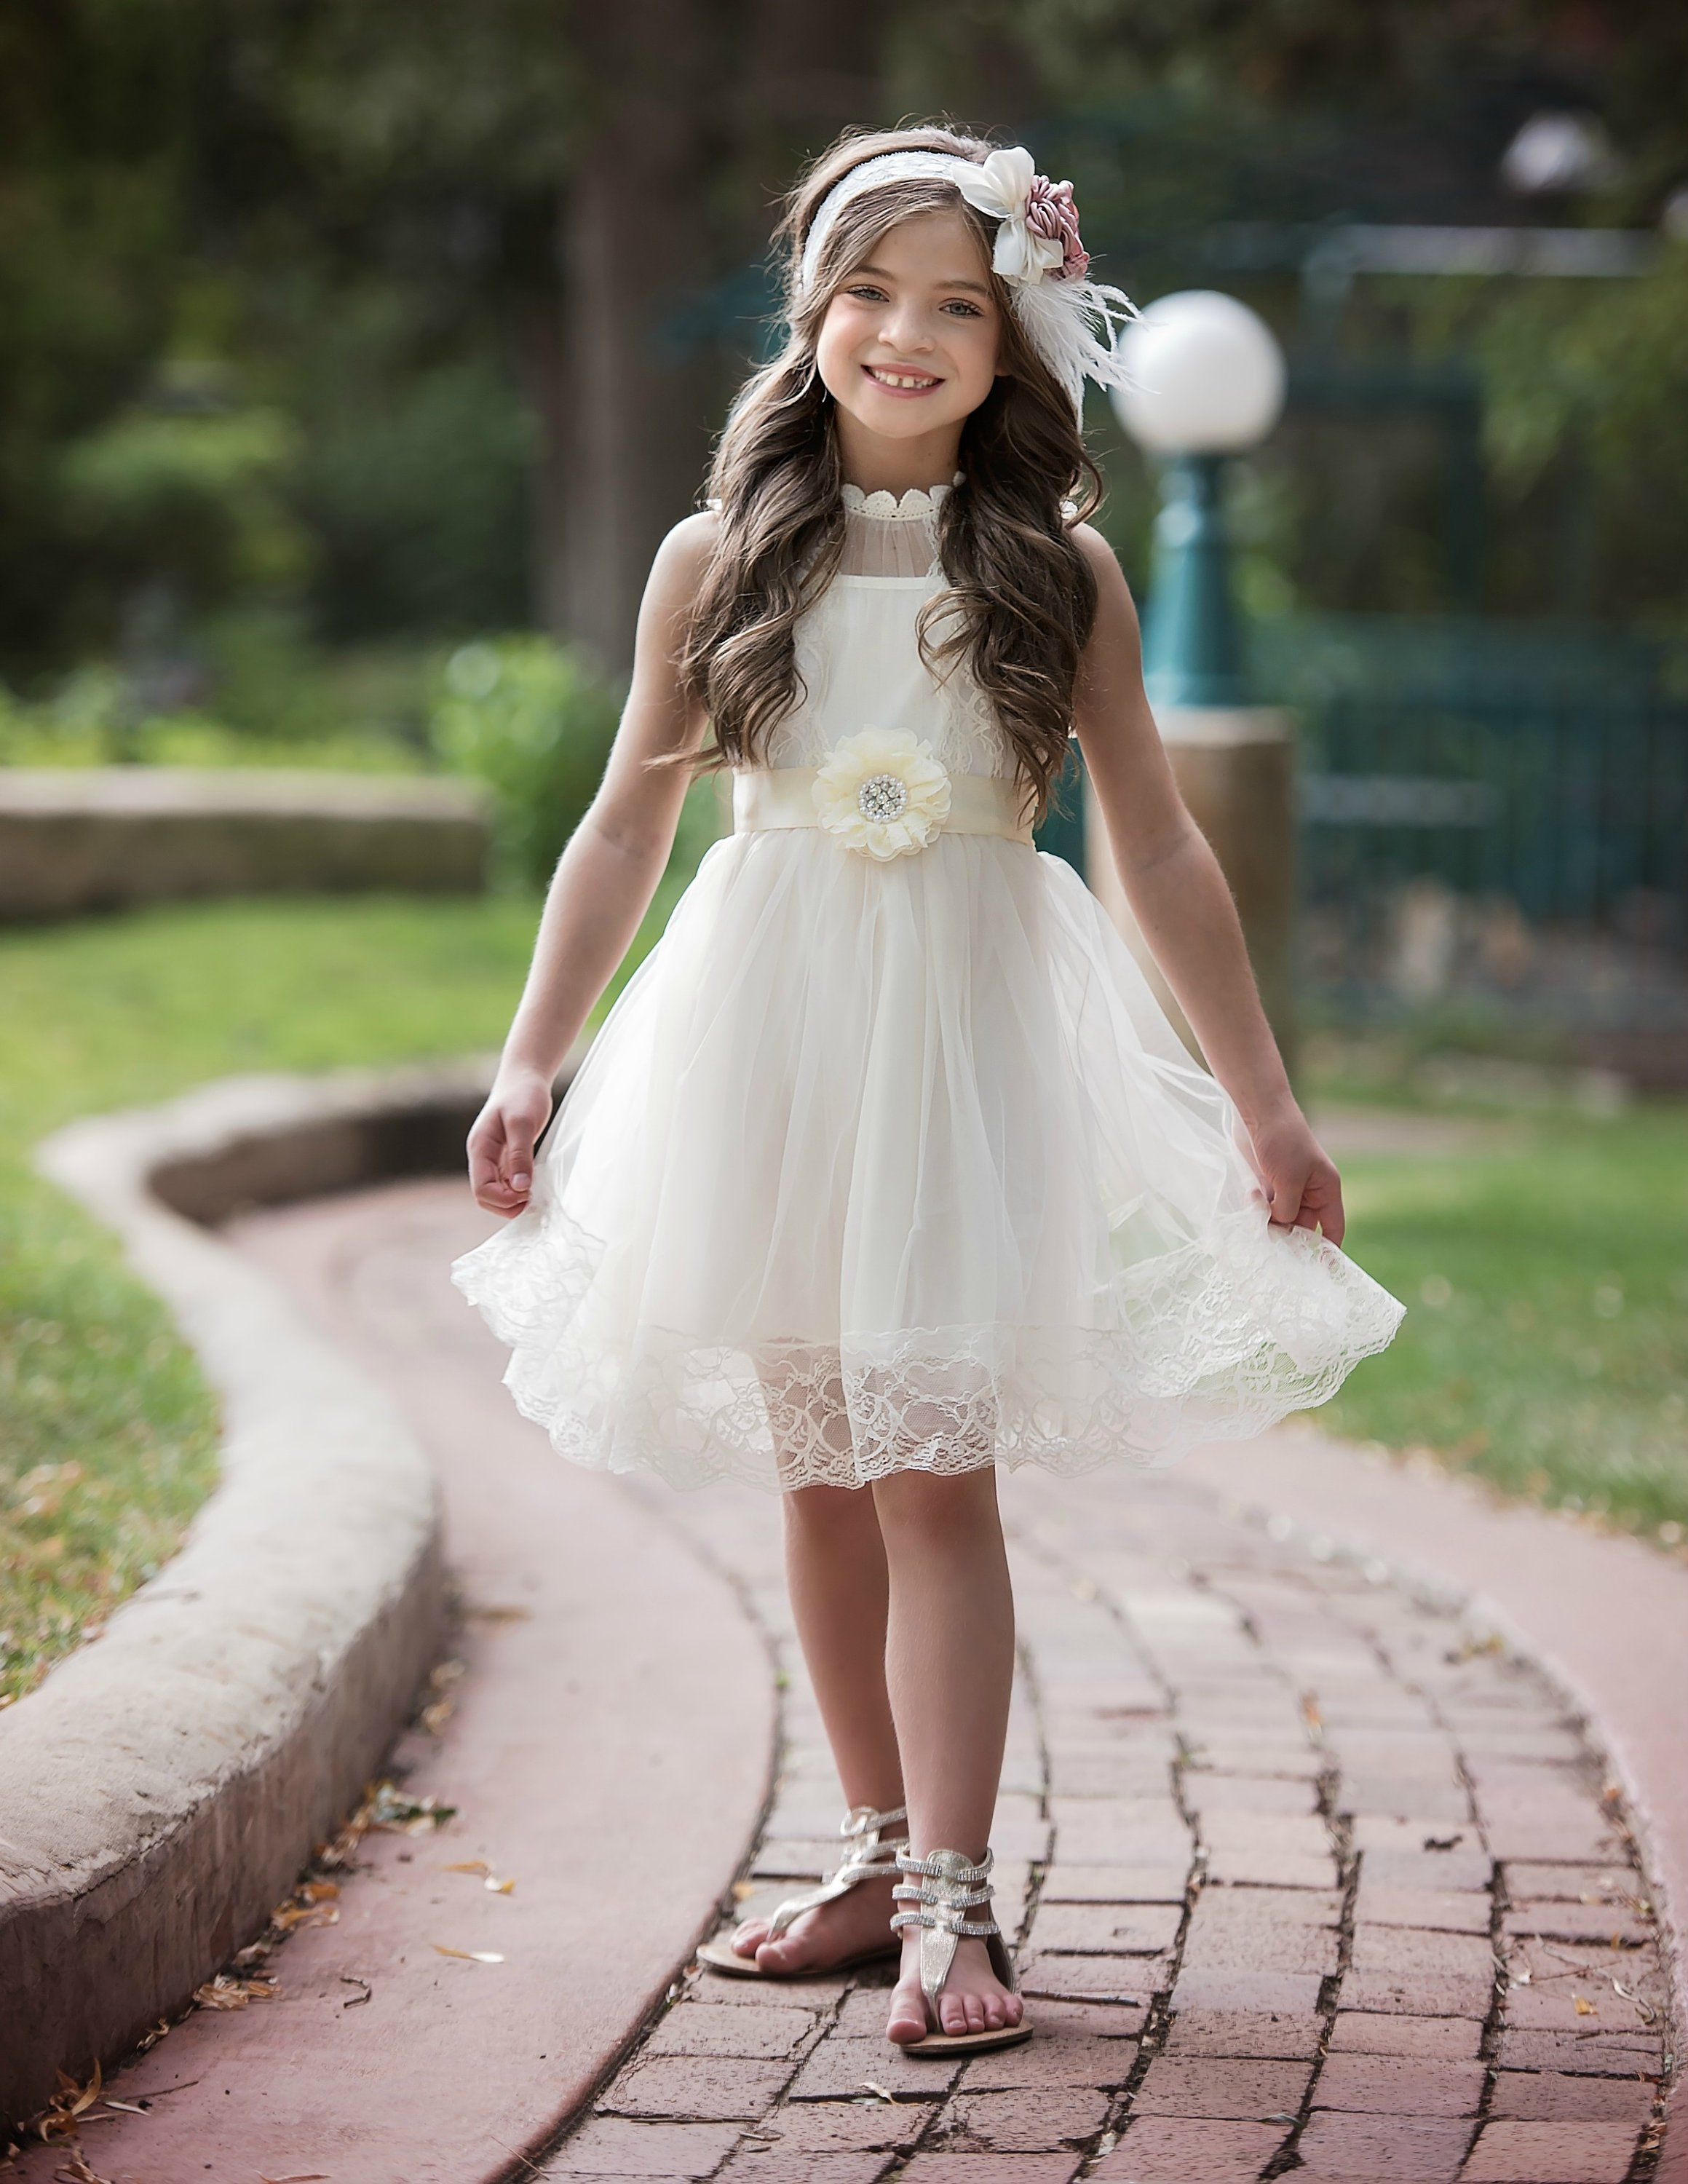 Lace Flower girl dress, rustic bohemian.jpg